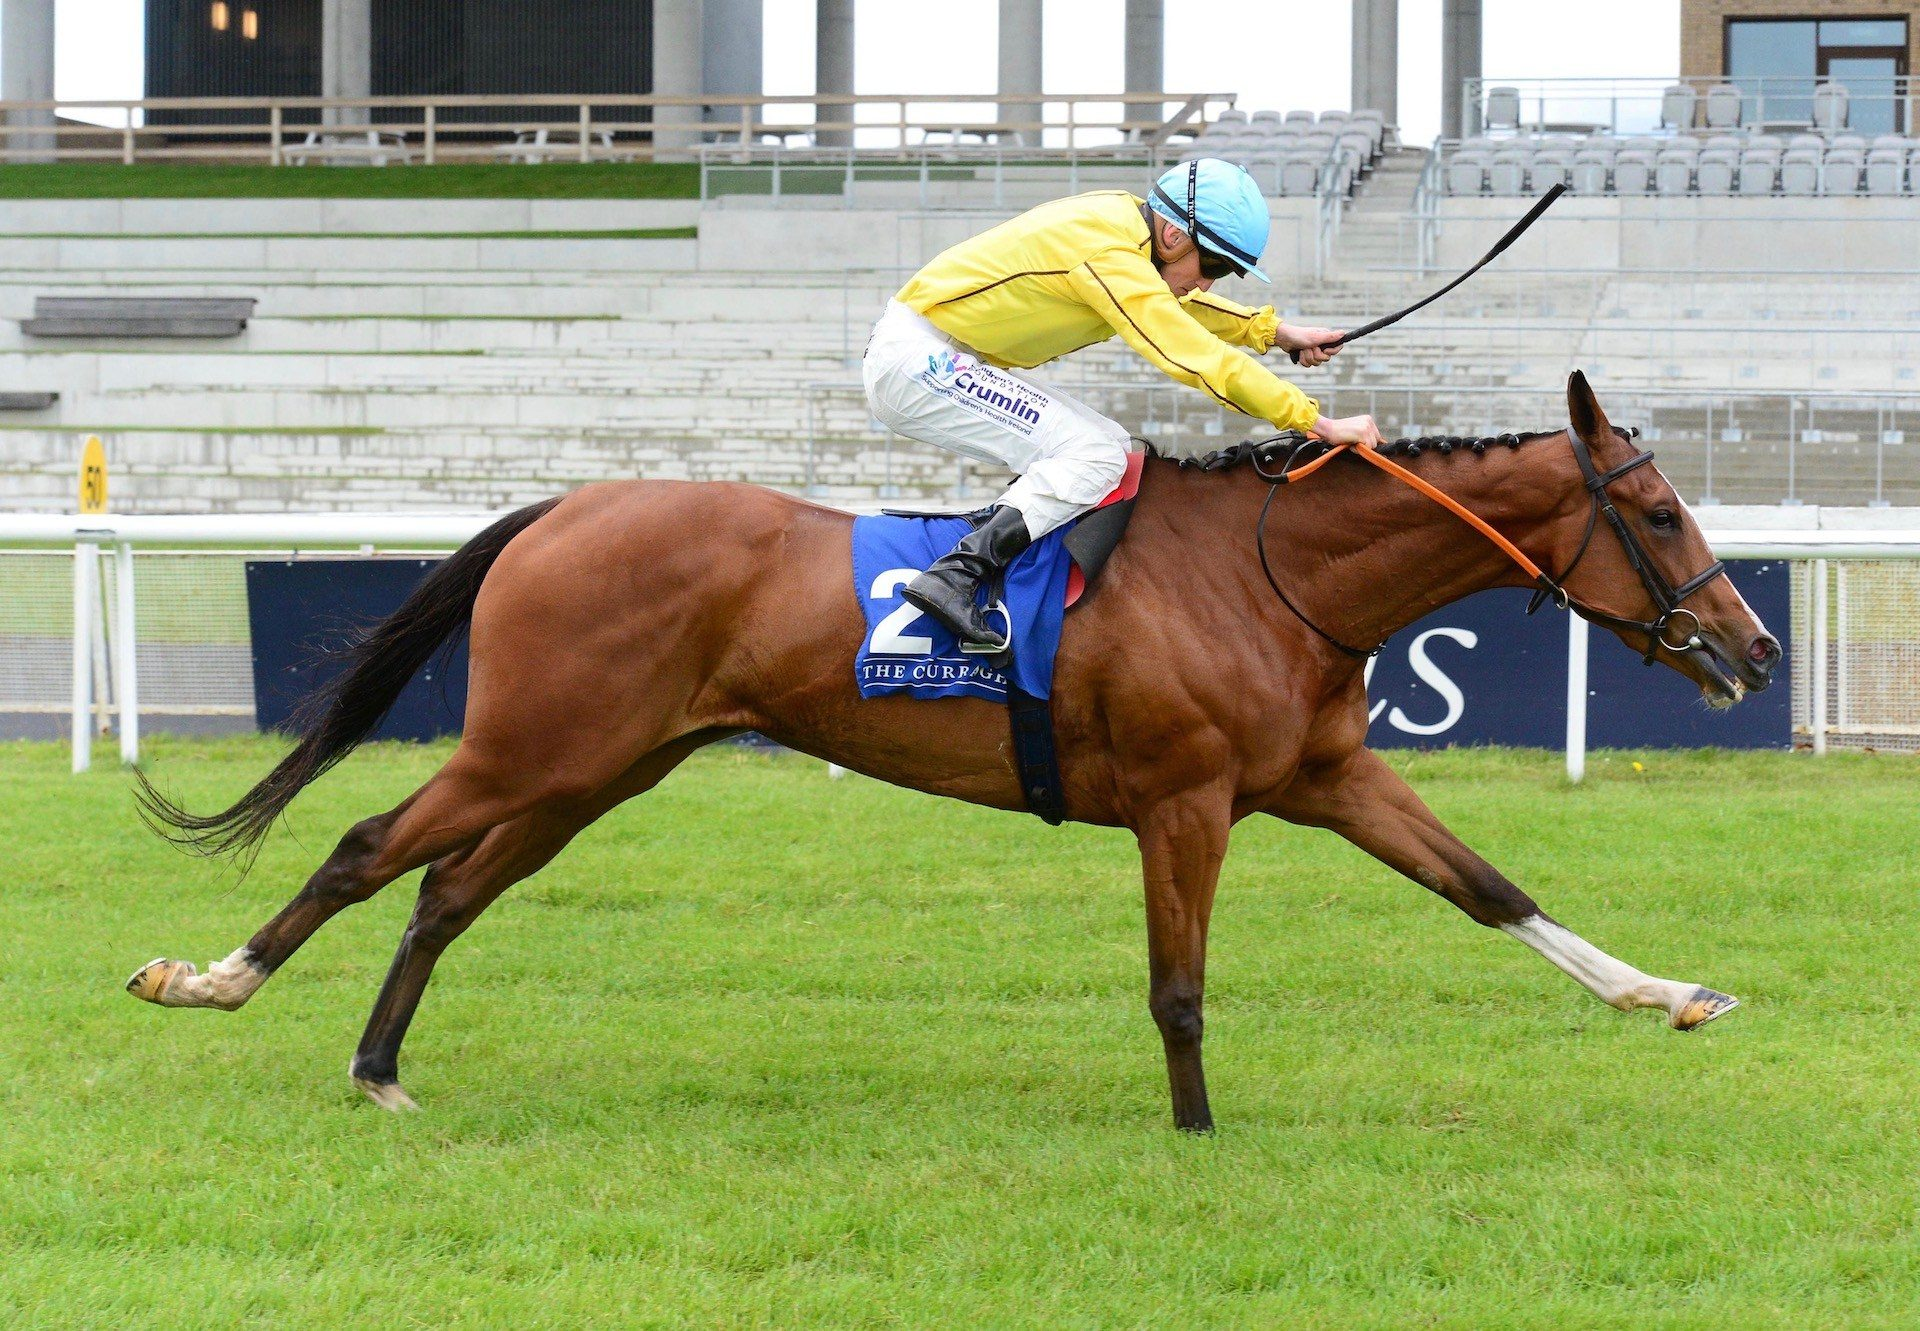 Epona Plays (Australia) Wins The Group 2 Lanwades Stud Stakes At The Curragh